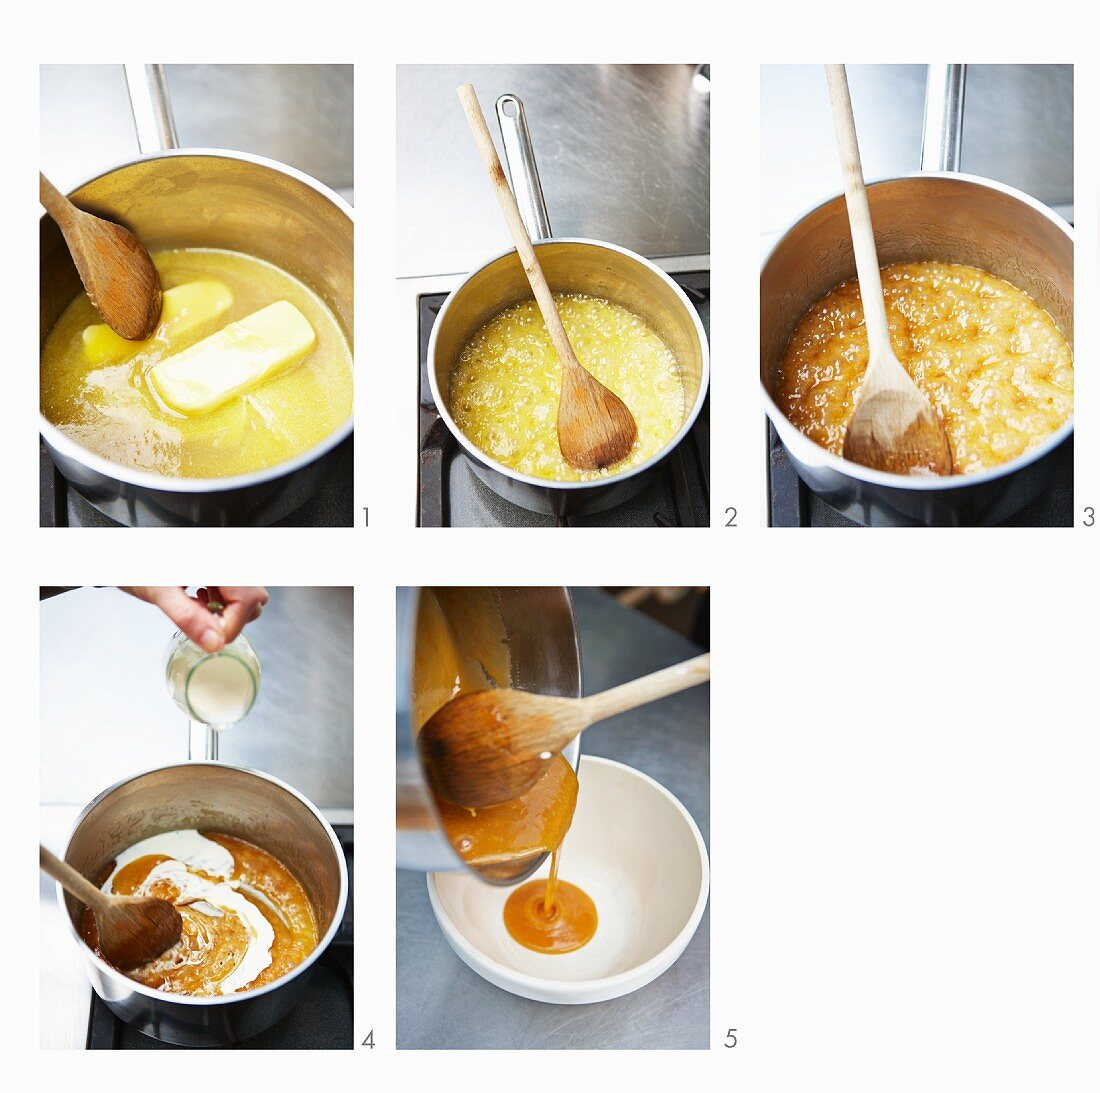 Caramel sauce for toffee ice cream being made